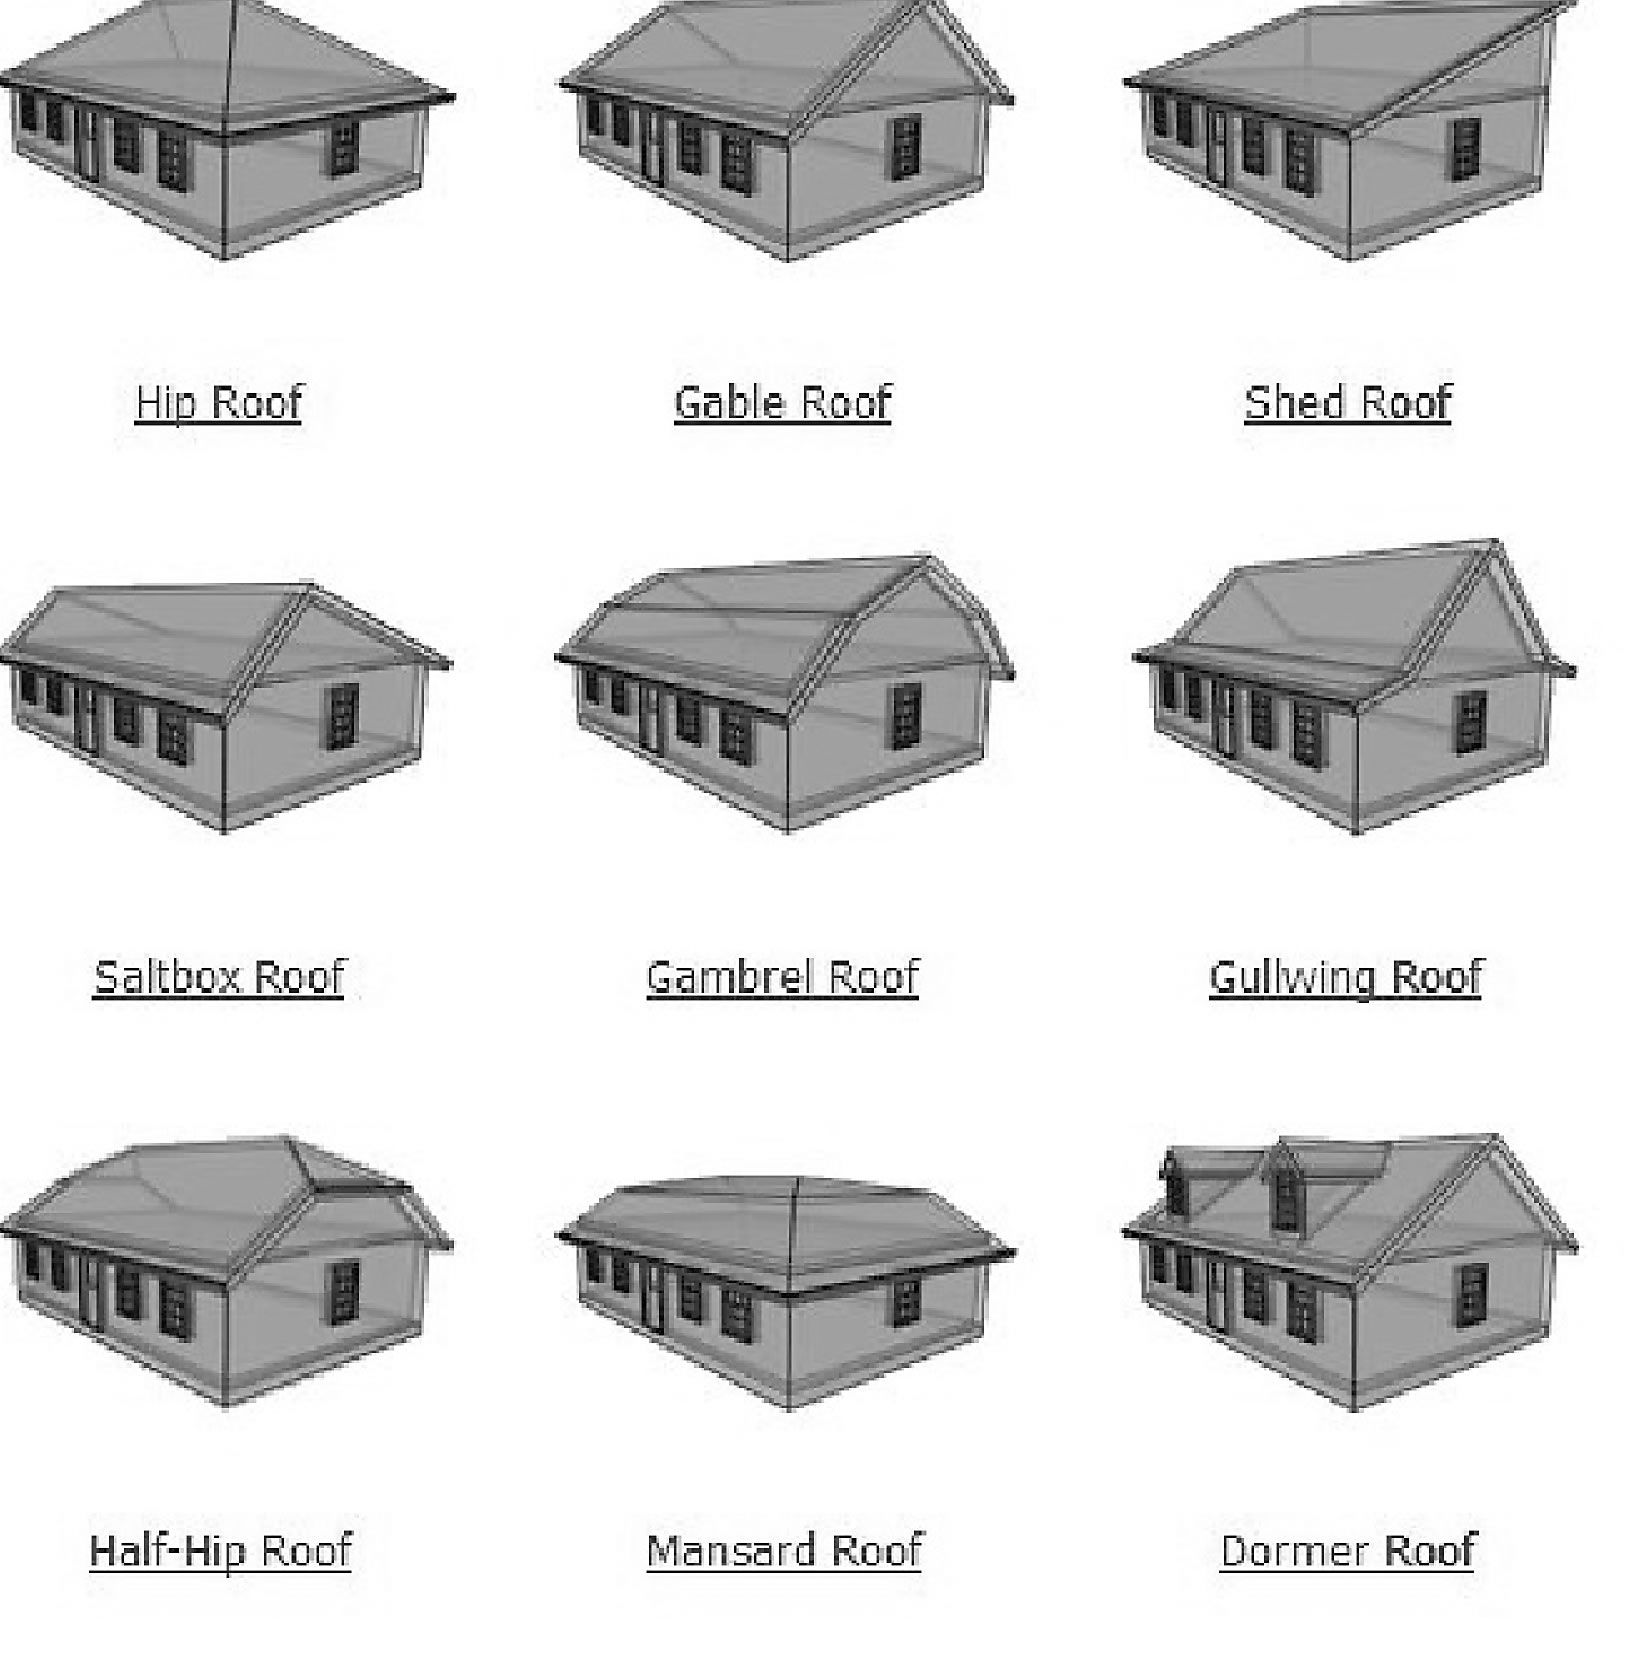 French roof styles roofs and shed dormer roofs they for Popular architectural styles